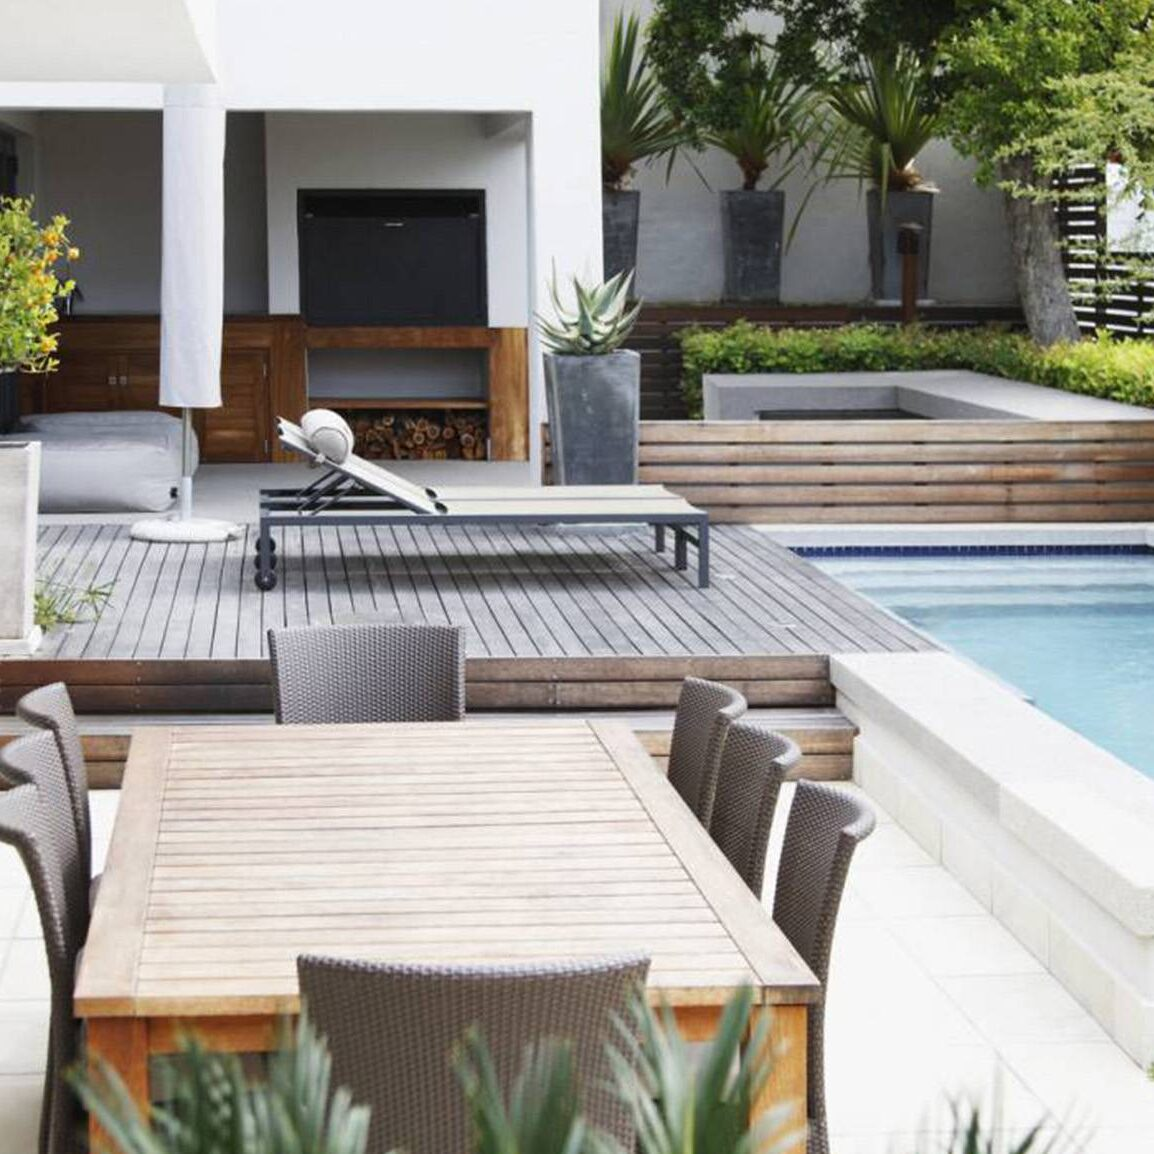 inground pool and patio project by landscaping company